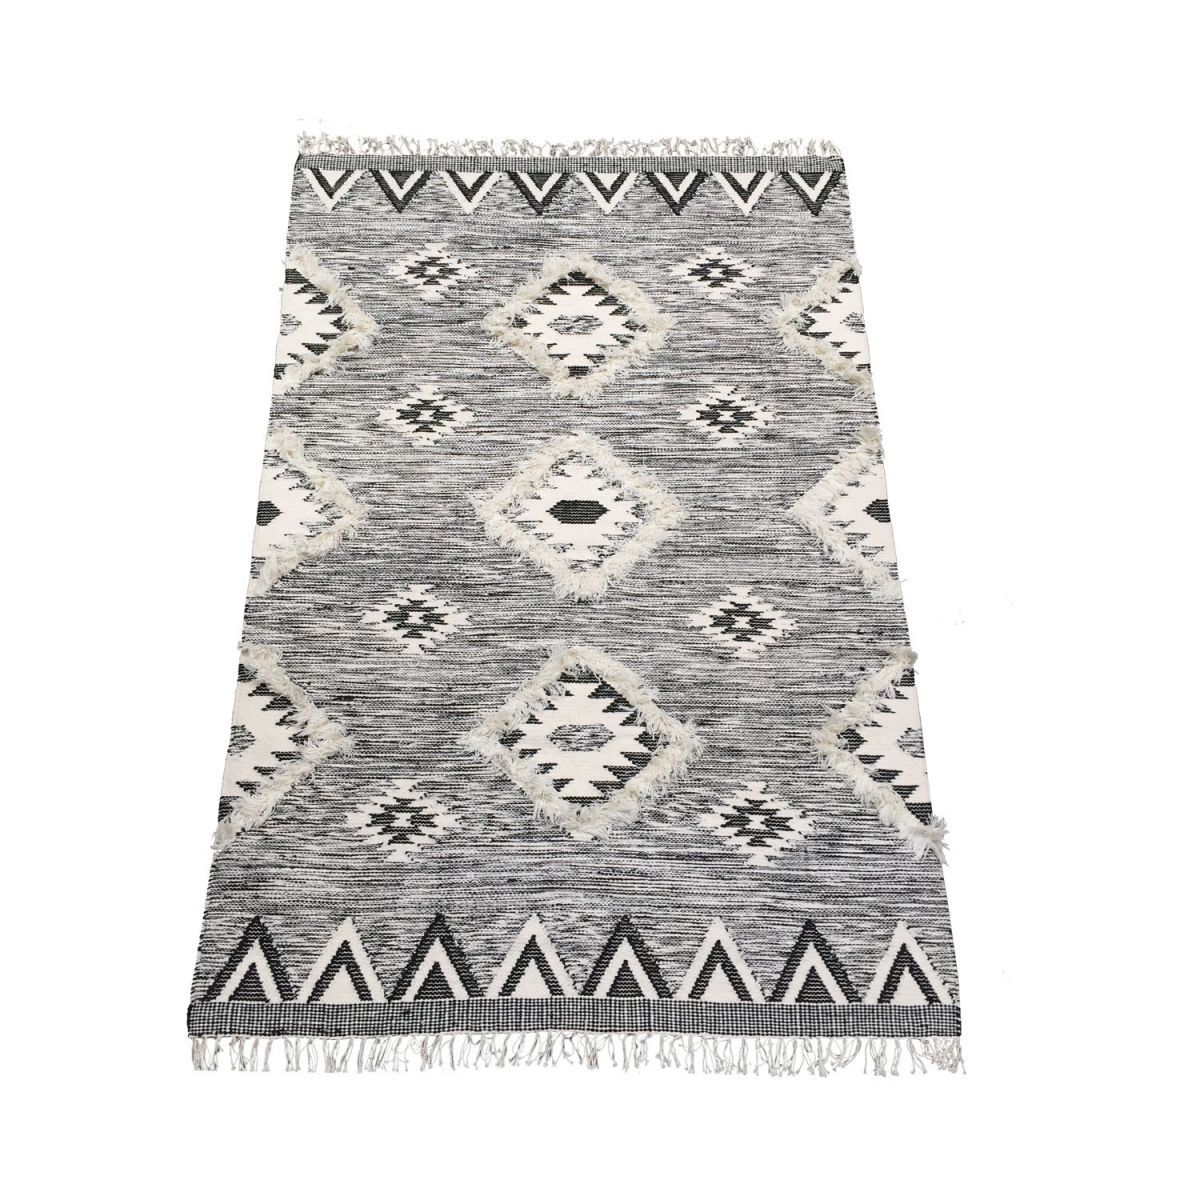 rug wool woven graphic design black white 200x300cm